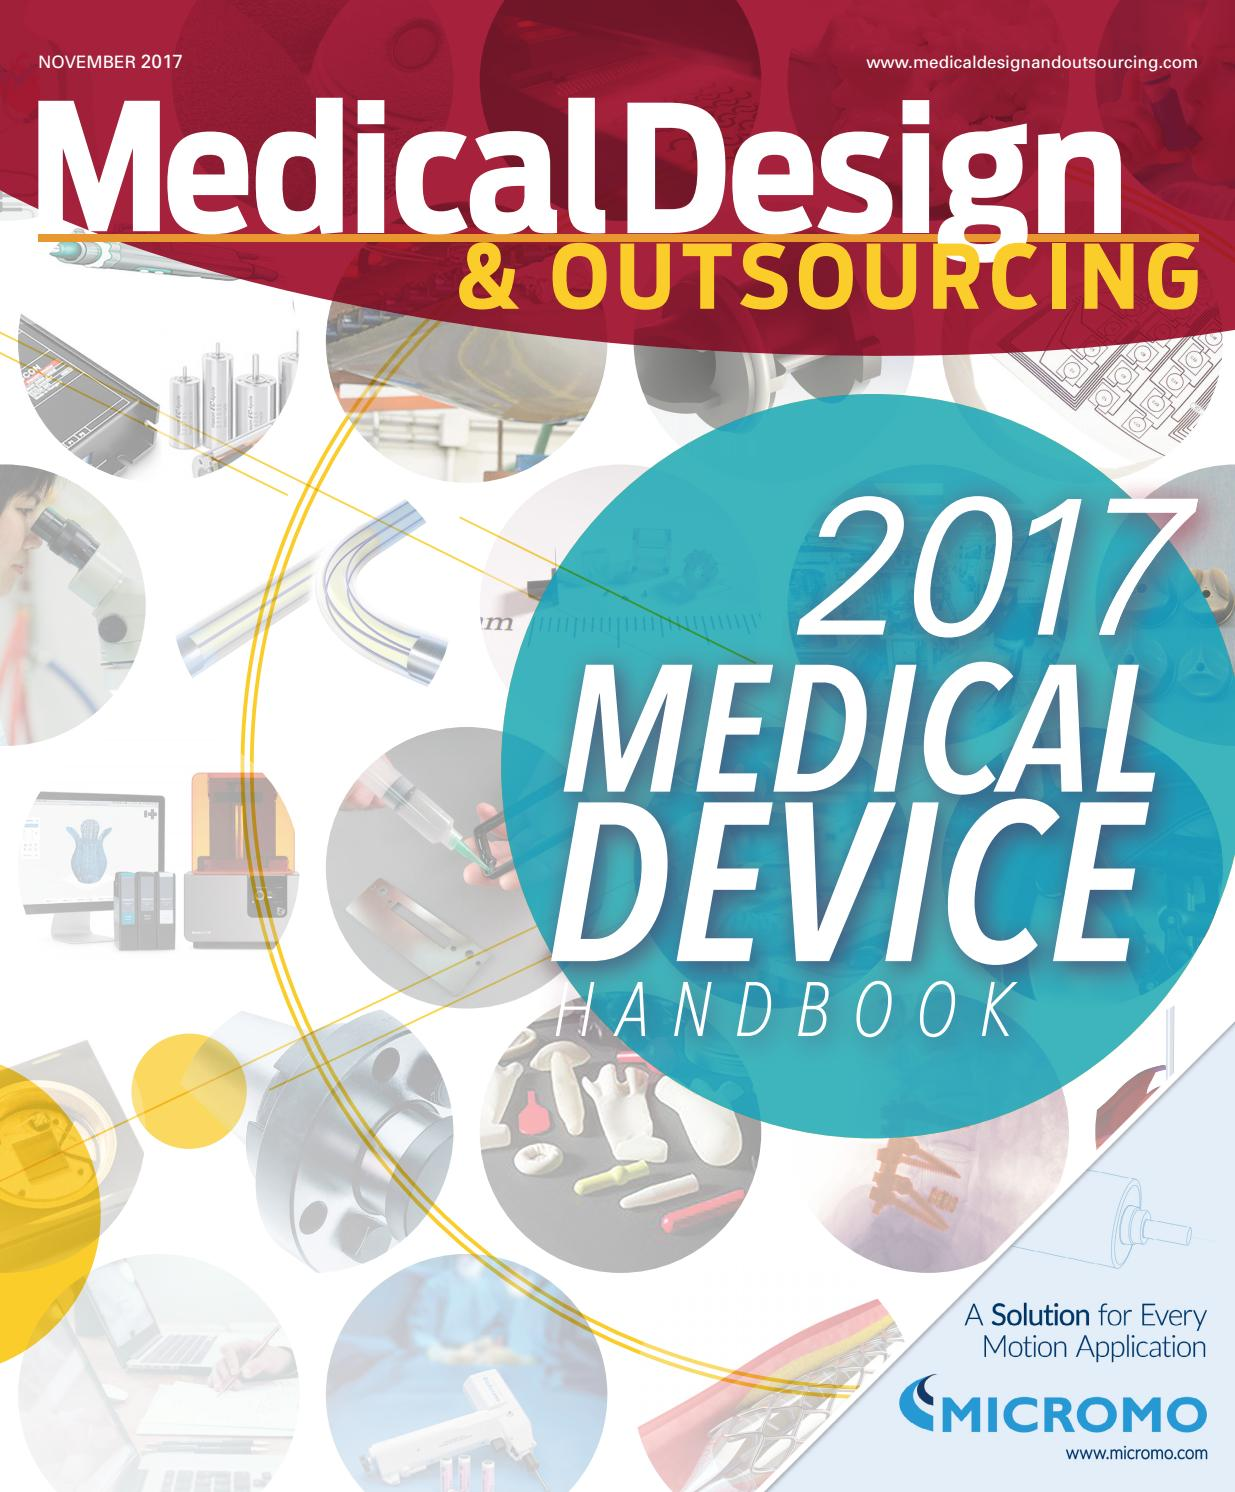 Medical Design Outsourcing November 2017 By Wtwh Media Llc Issuu Power Integrations 39s Electrical Engineering Blog Eeweb Community